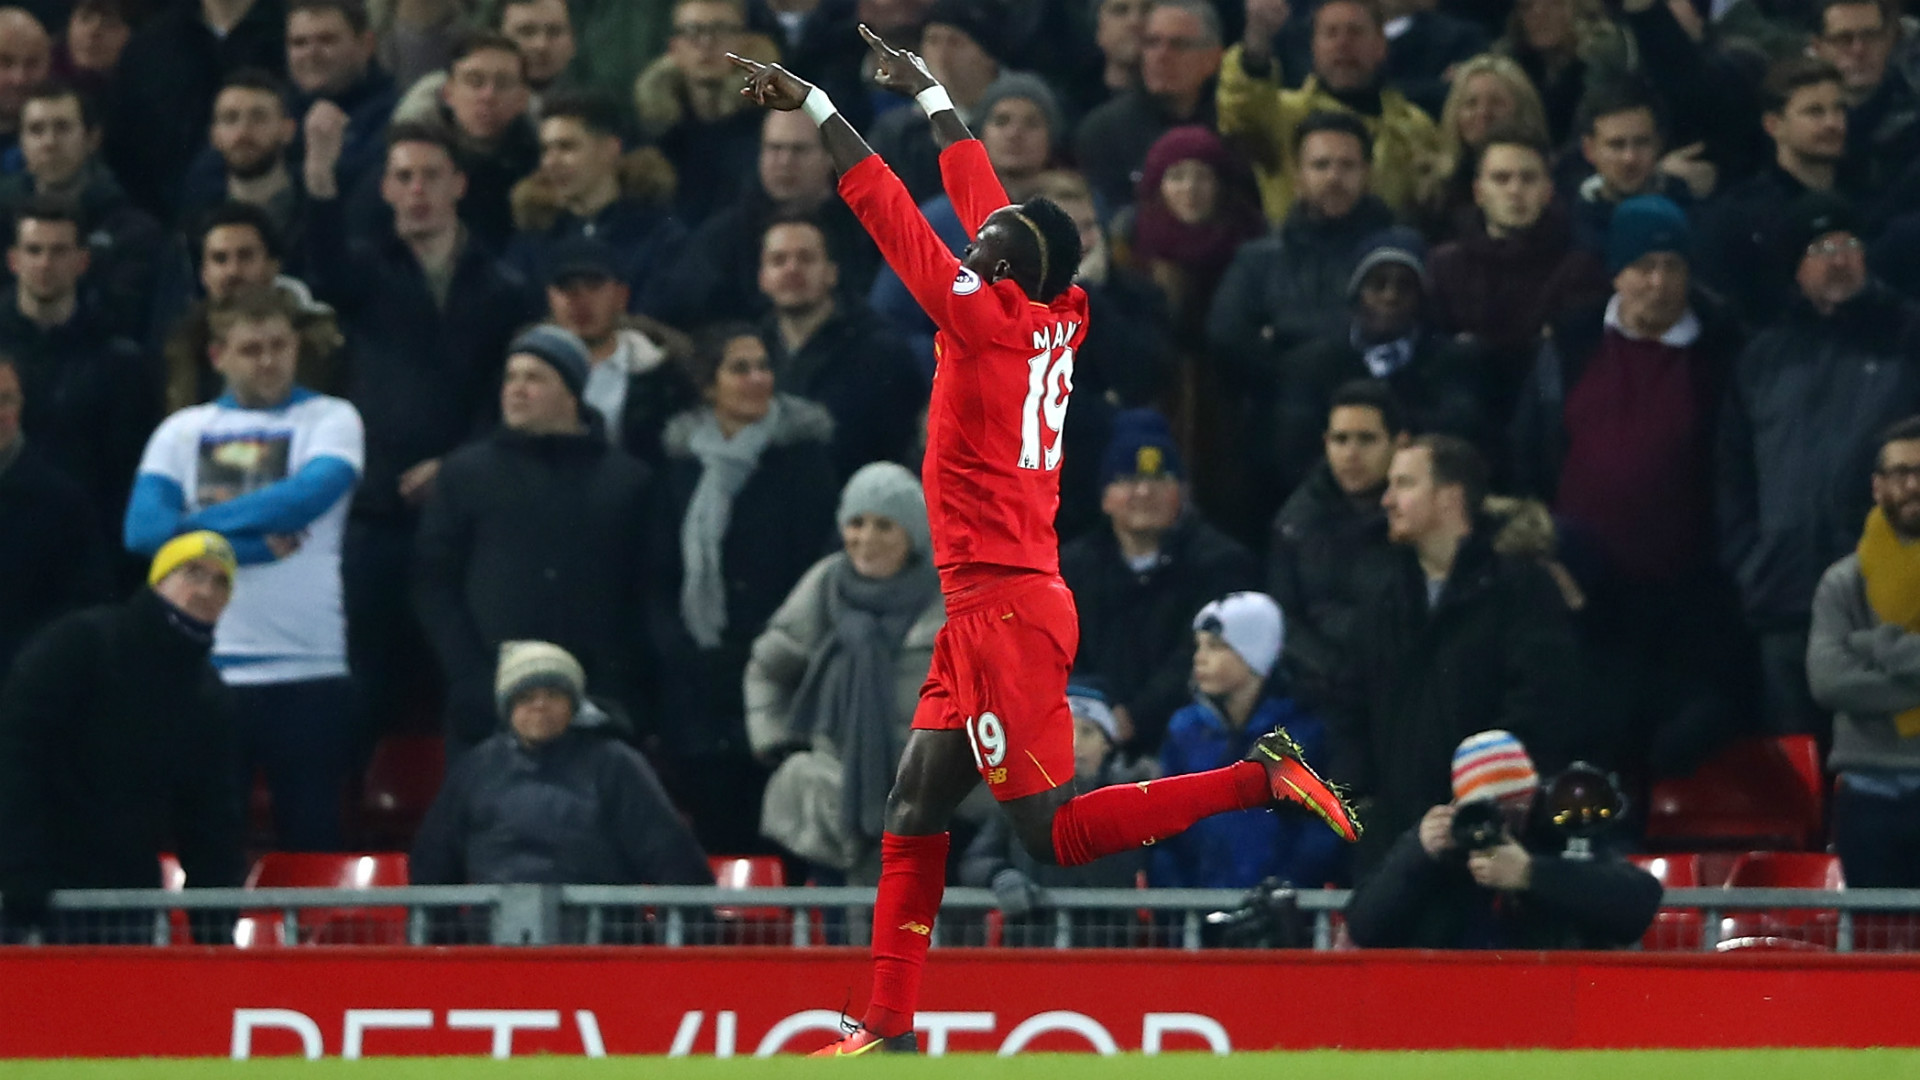 HD Sadio Mane celebrates